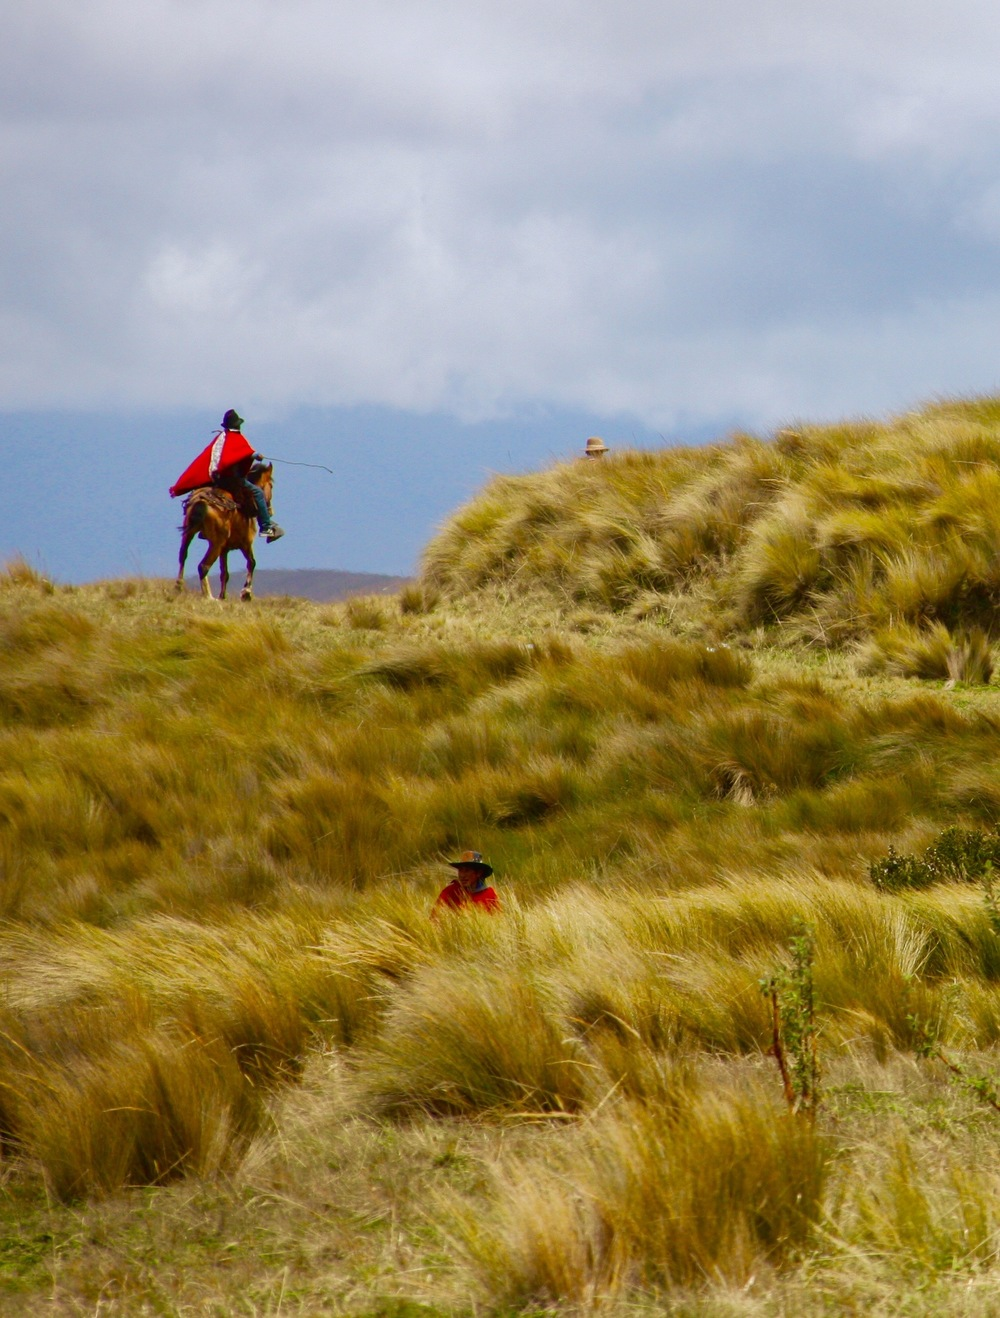 Horse and Rider in Andes Mountains Highlands, Ecuador - 3 Days*